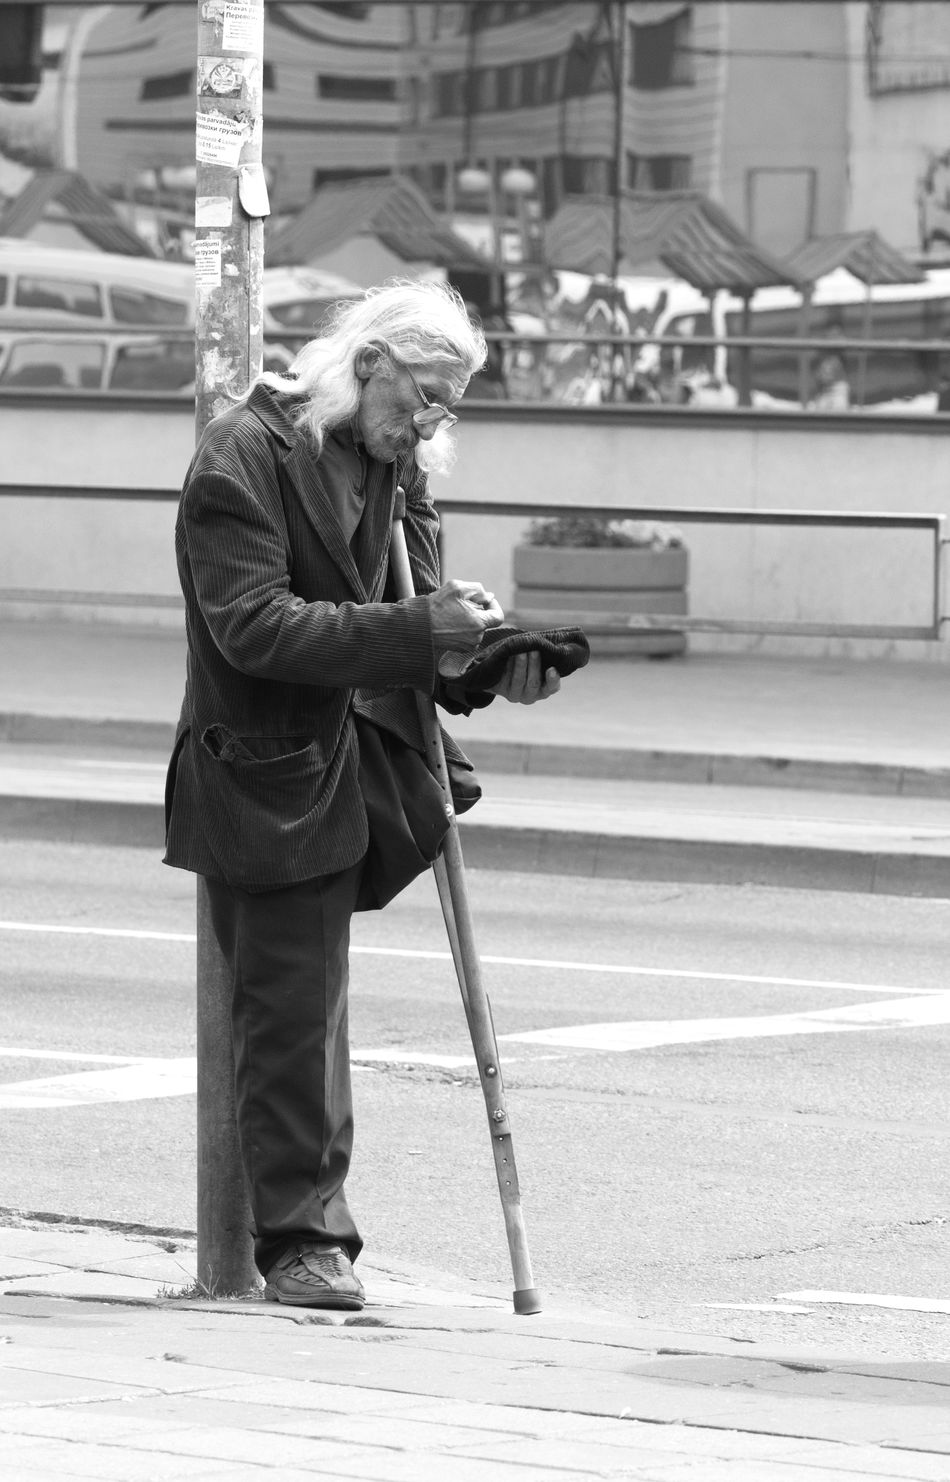 disabled person requests assistance to people Adult Adults Only Black And White Blackandwhite City Day Disabled Person EyeEm Best Shots Full Length Help Help Me Holding Money Old Men One Hand One Person Outdoors People Real People Society Streetphotography Warm Clothing Candid